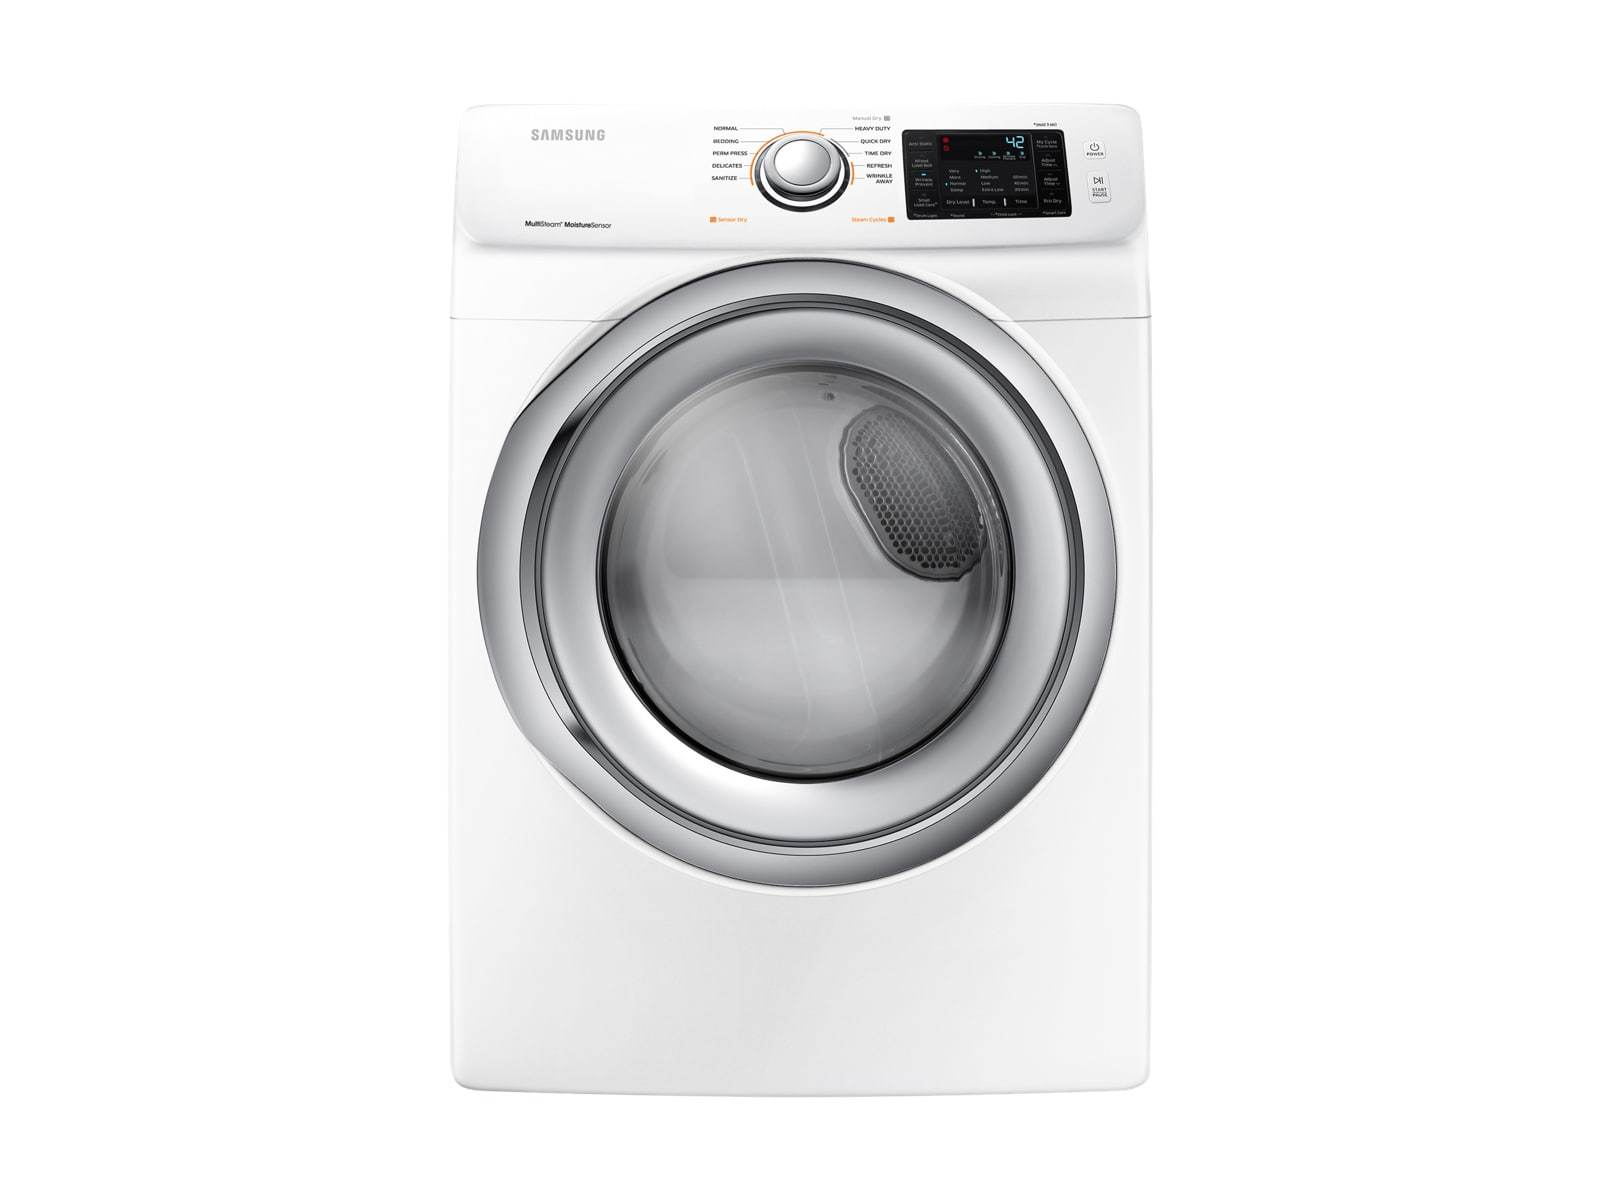 Samsung 7 5-cu ft Stackable Electric Dryer (White) at Lowes com